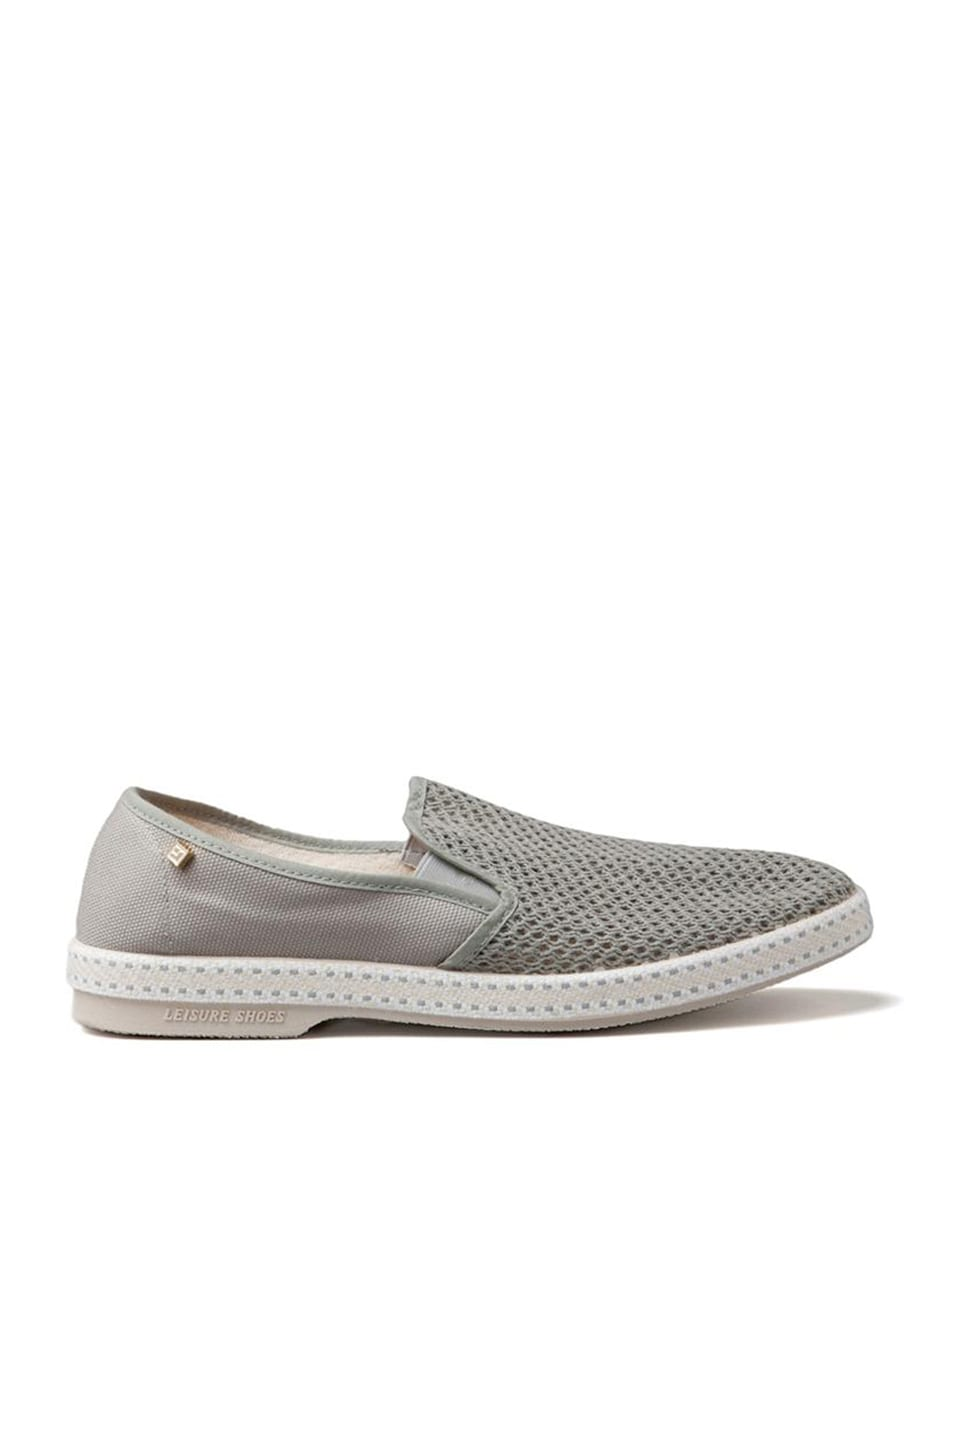 Rivieras Classic Color Canvas & Mesh in Classic Gris 20